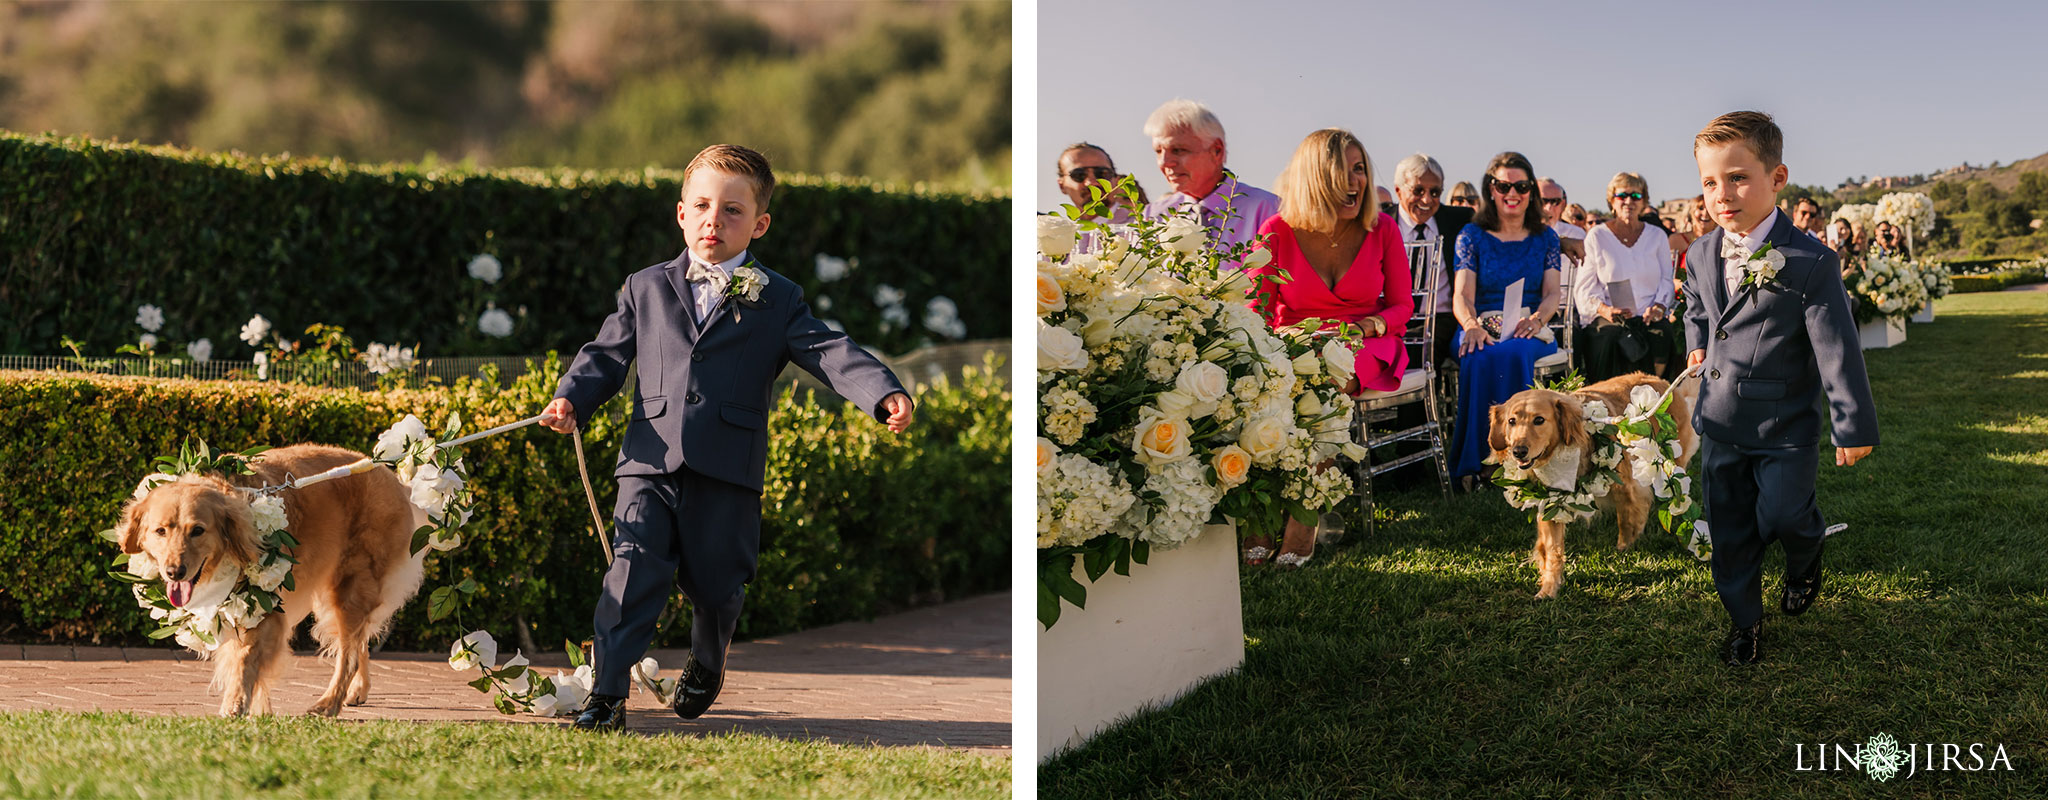 74 pelican hill orange county wedding photography